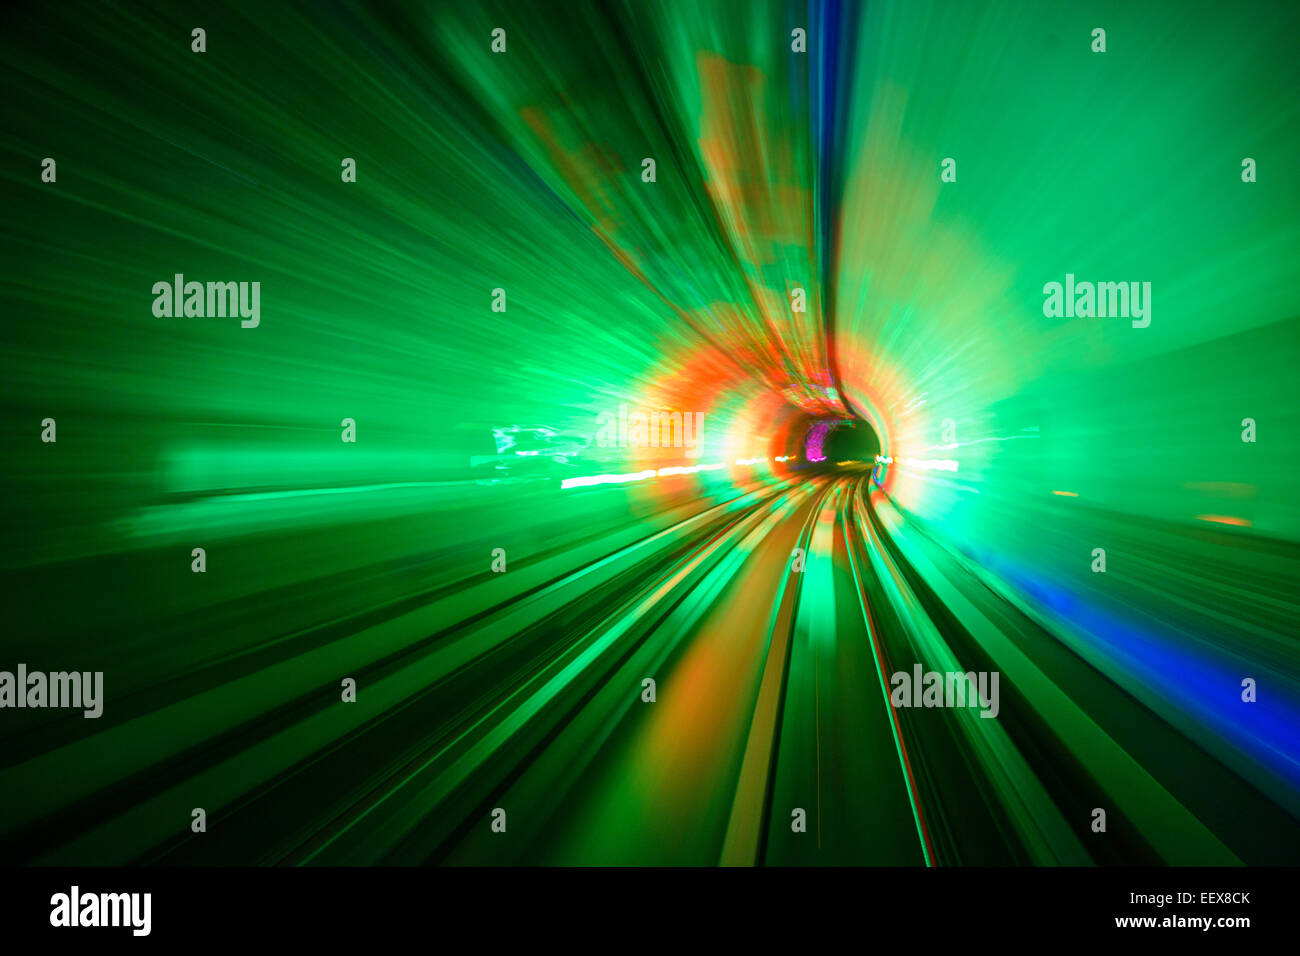 Motion blur in the Shanghai Sightseeing Tunnel. - Stock Image